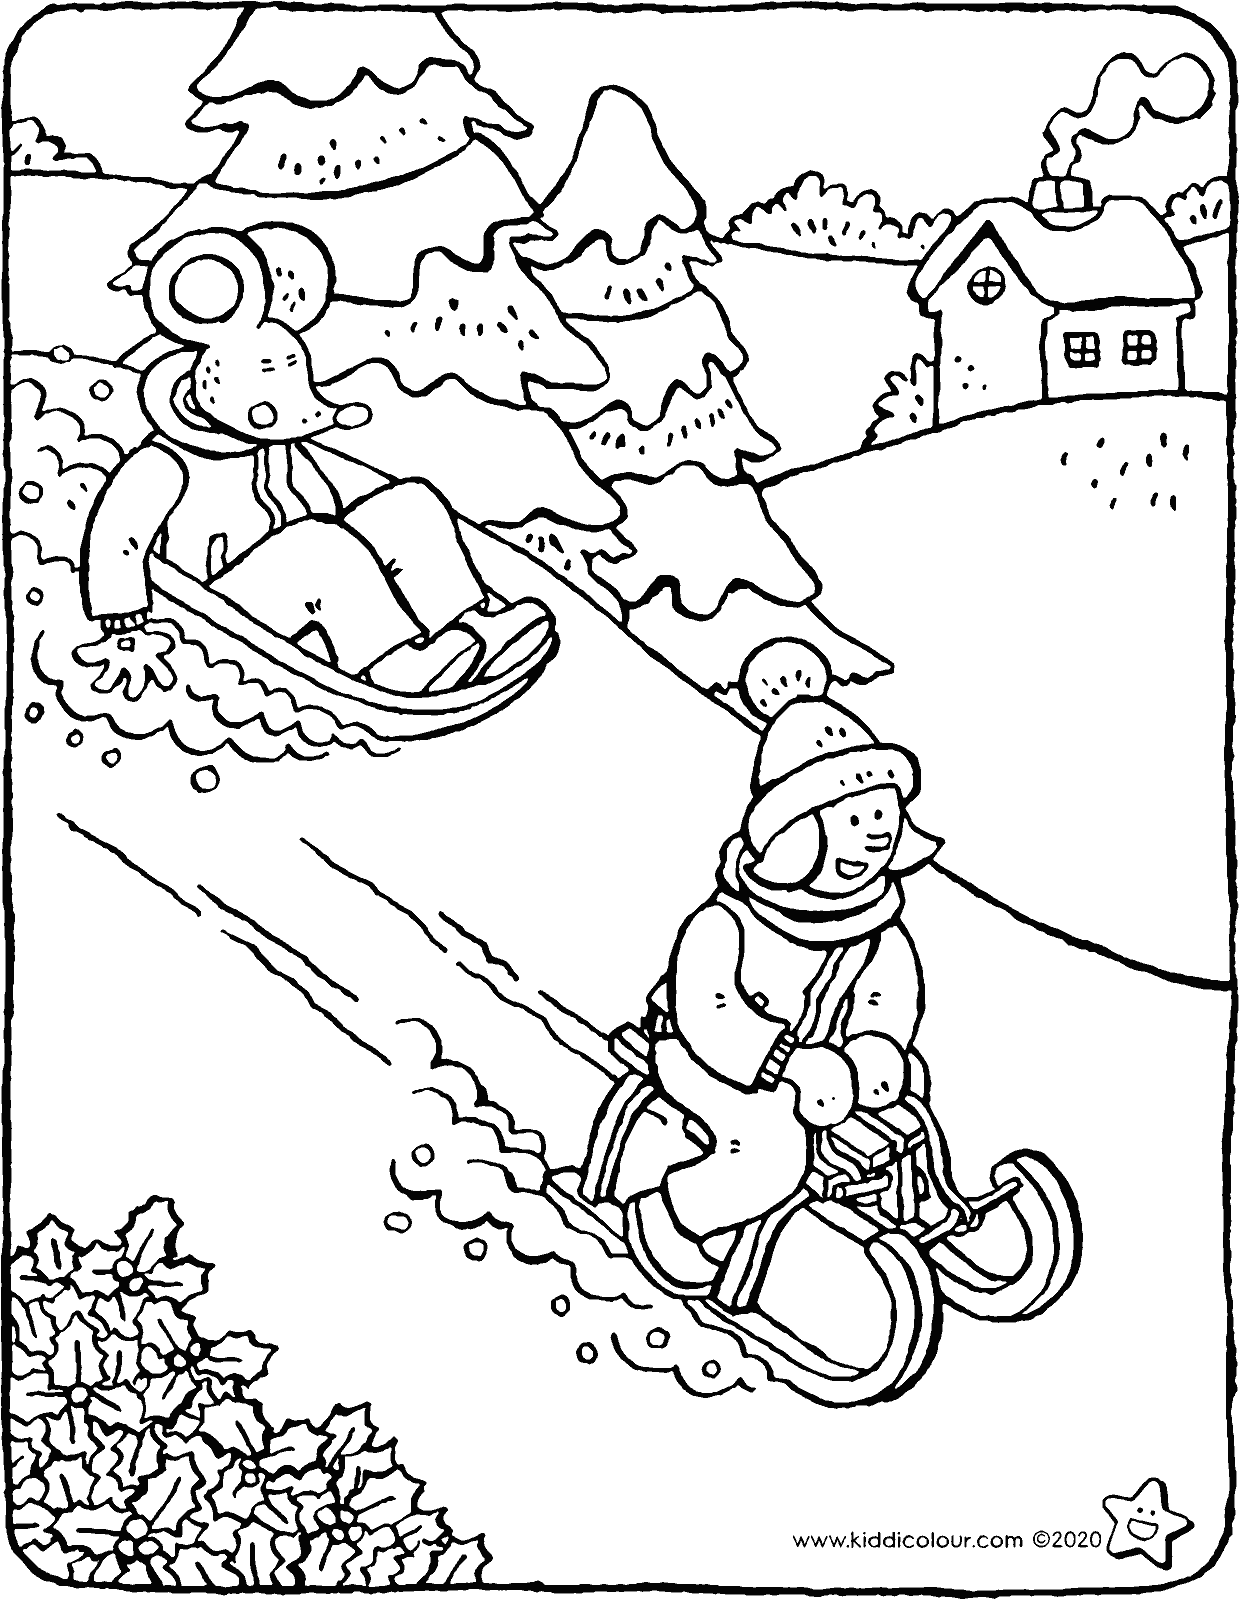 Emma and Thomas go sledging colouring page drawing picture 01V